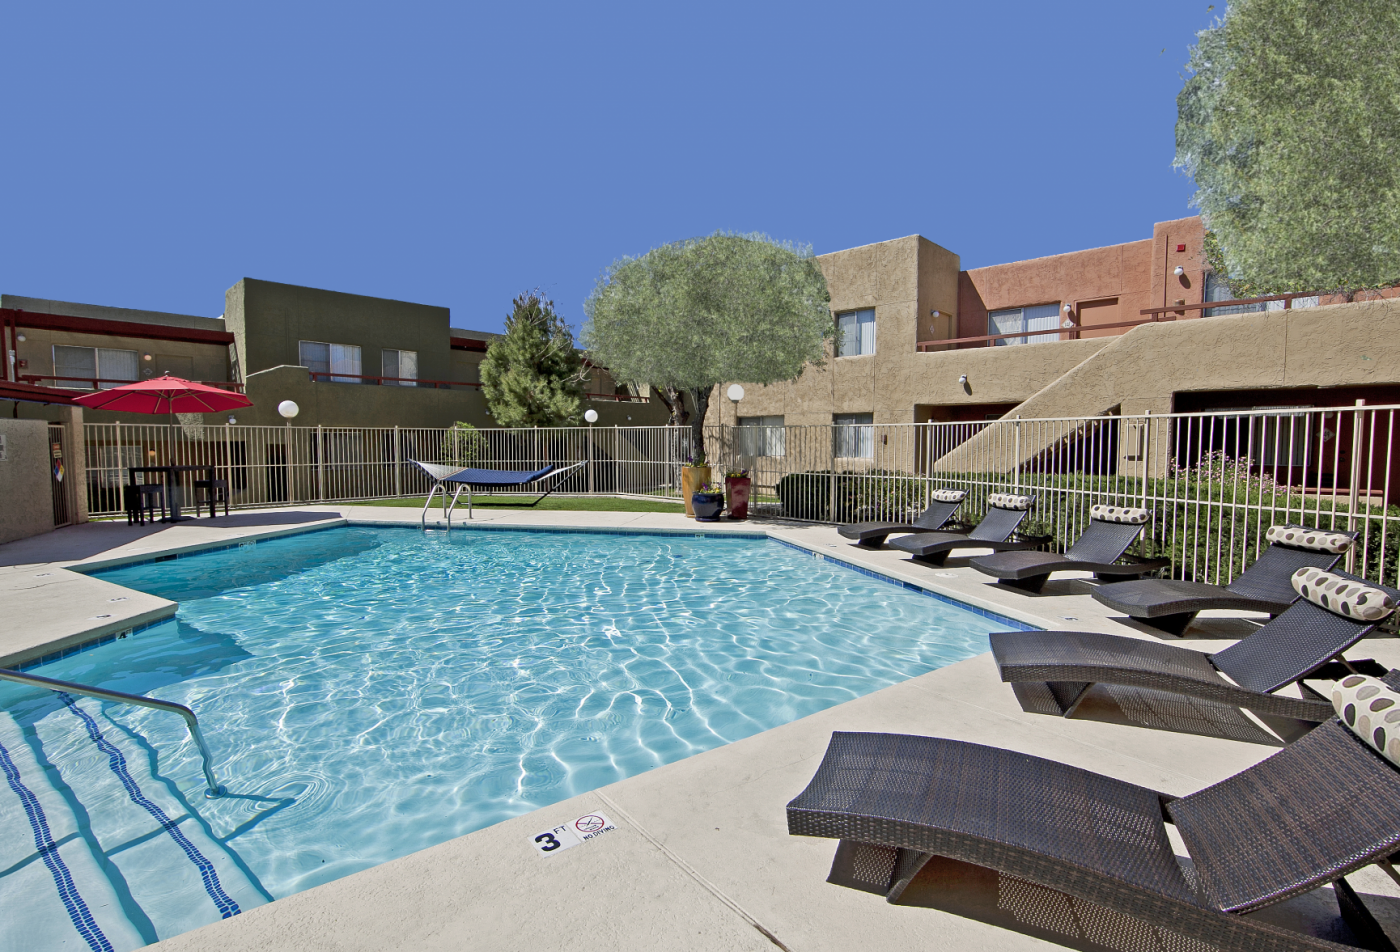 Zona Verde apartments Tucson, AZ pool, patio and exterior